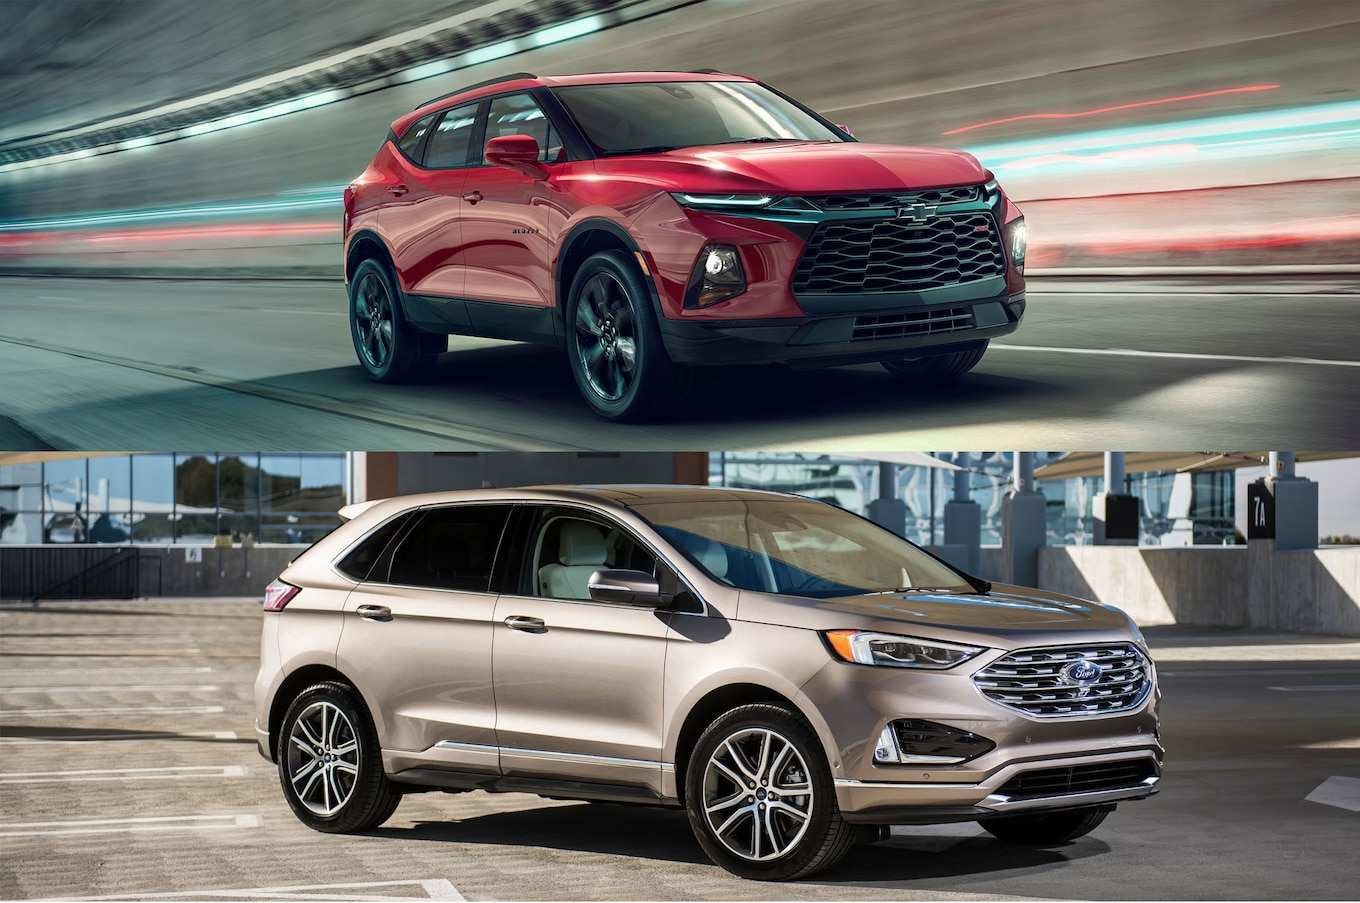 47 The Best 2019 Bmw Vs Chevy Images